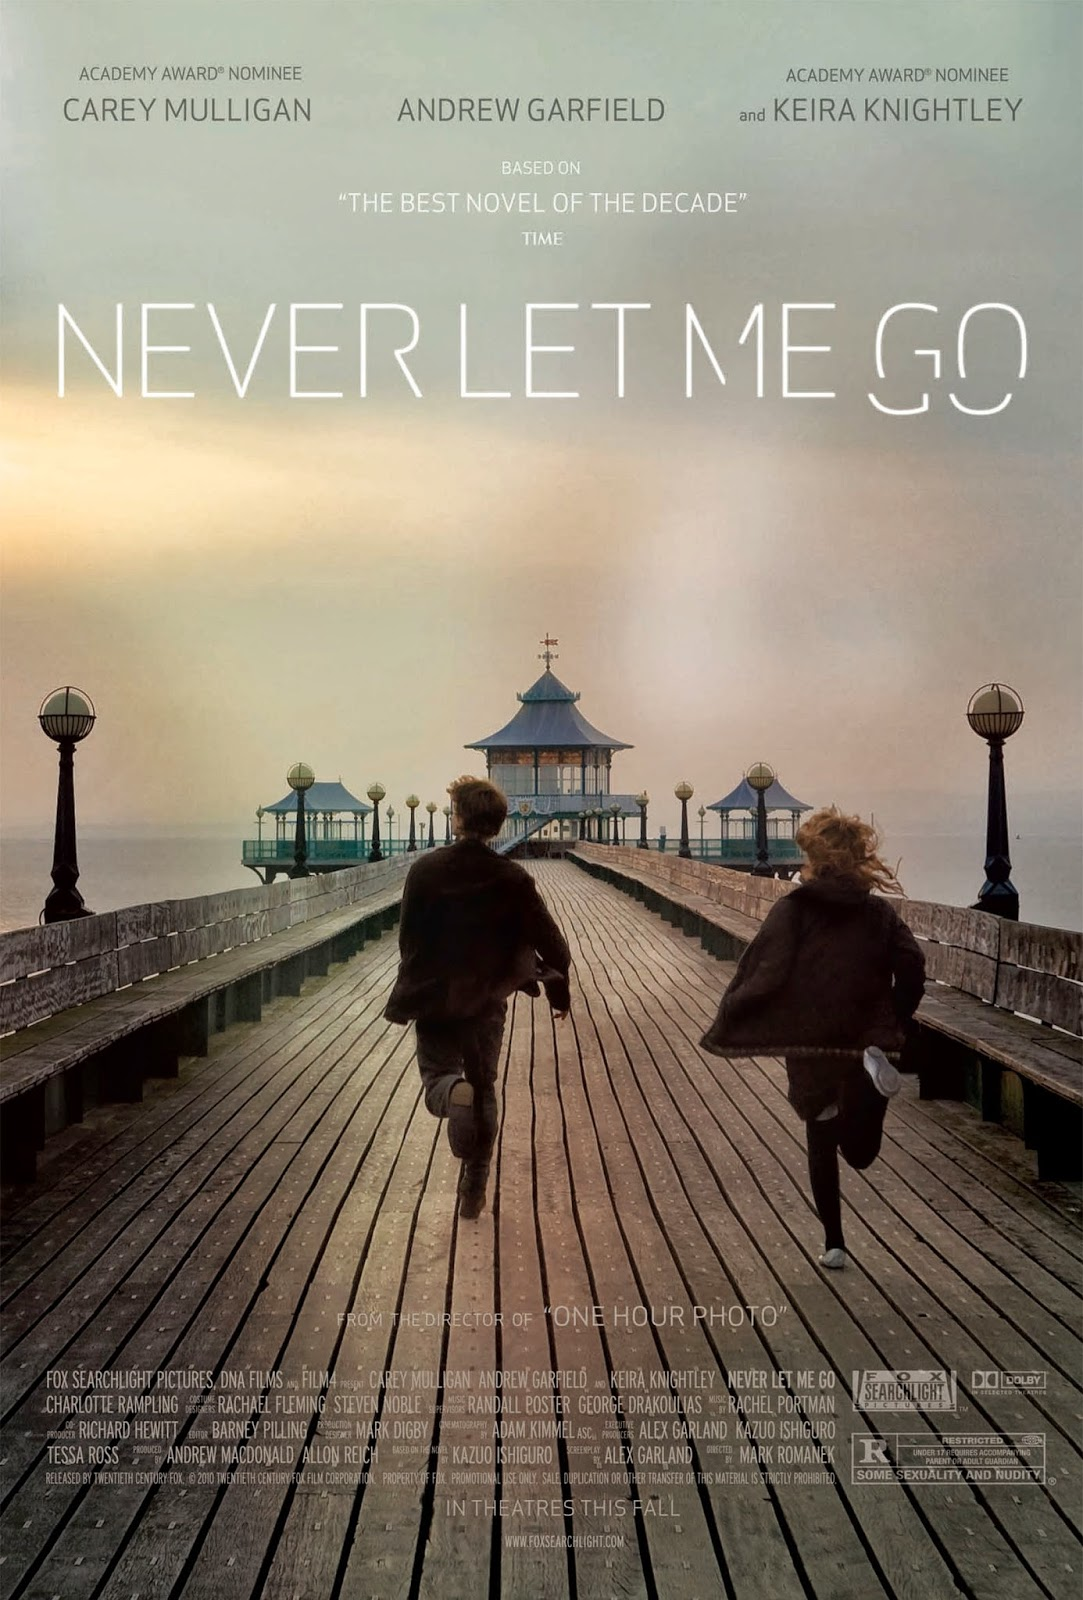 Clevedon Piere - Never Let Me Go